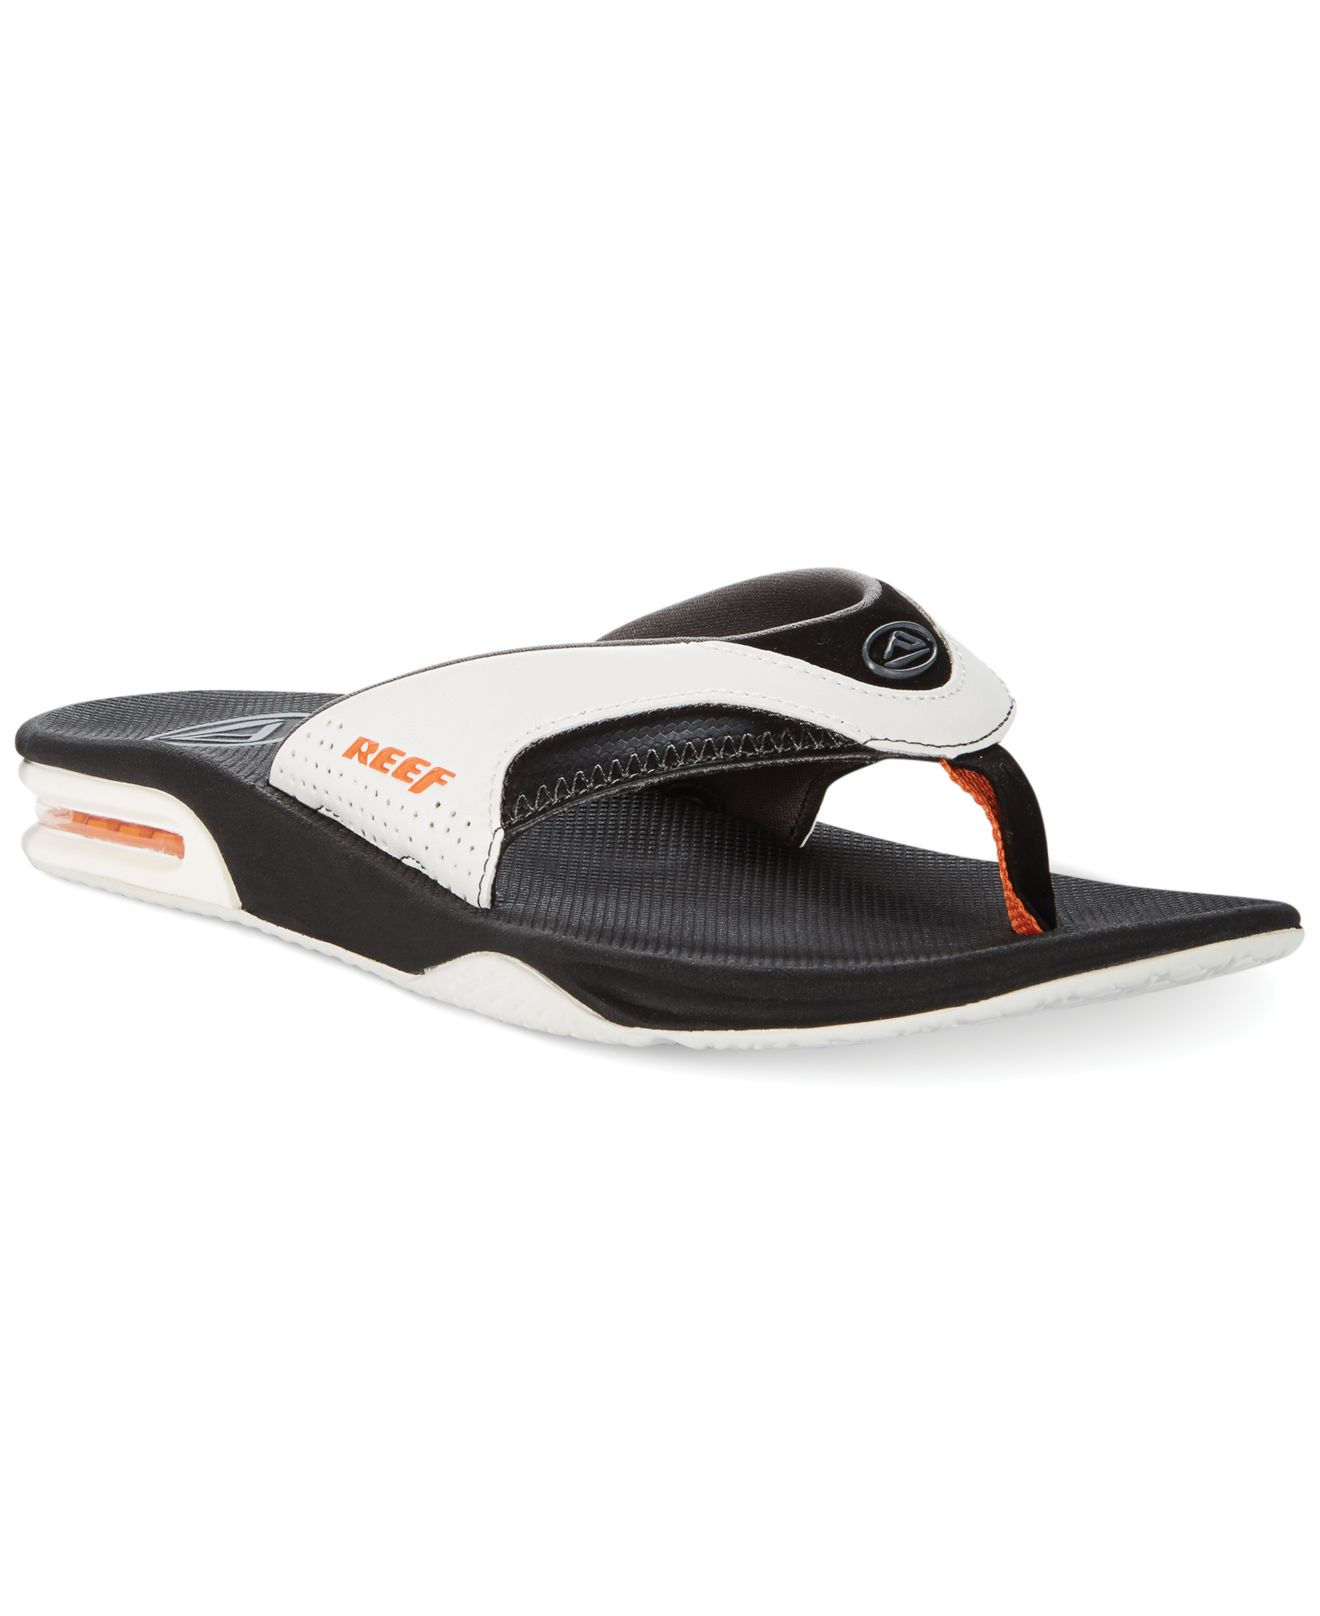 reef fanning thong sandals with bottle opener in white for men lyst. Black Bedroom Furniture Sets. Home Design Ideas